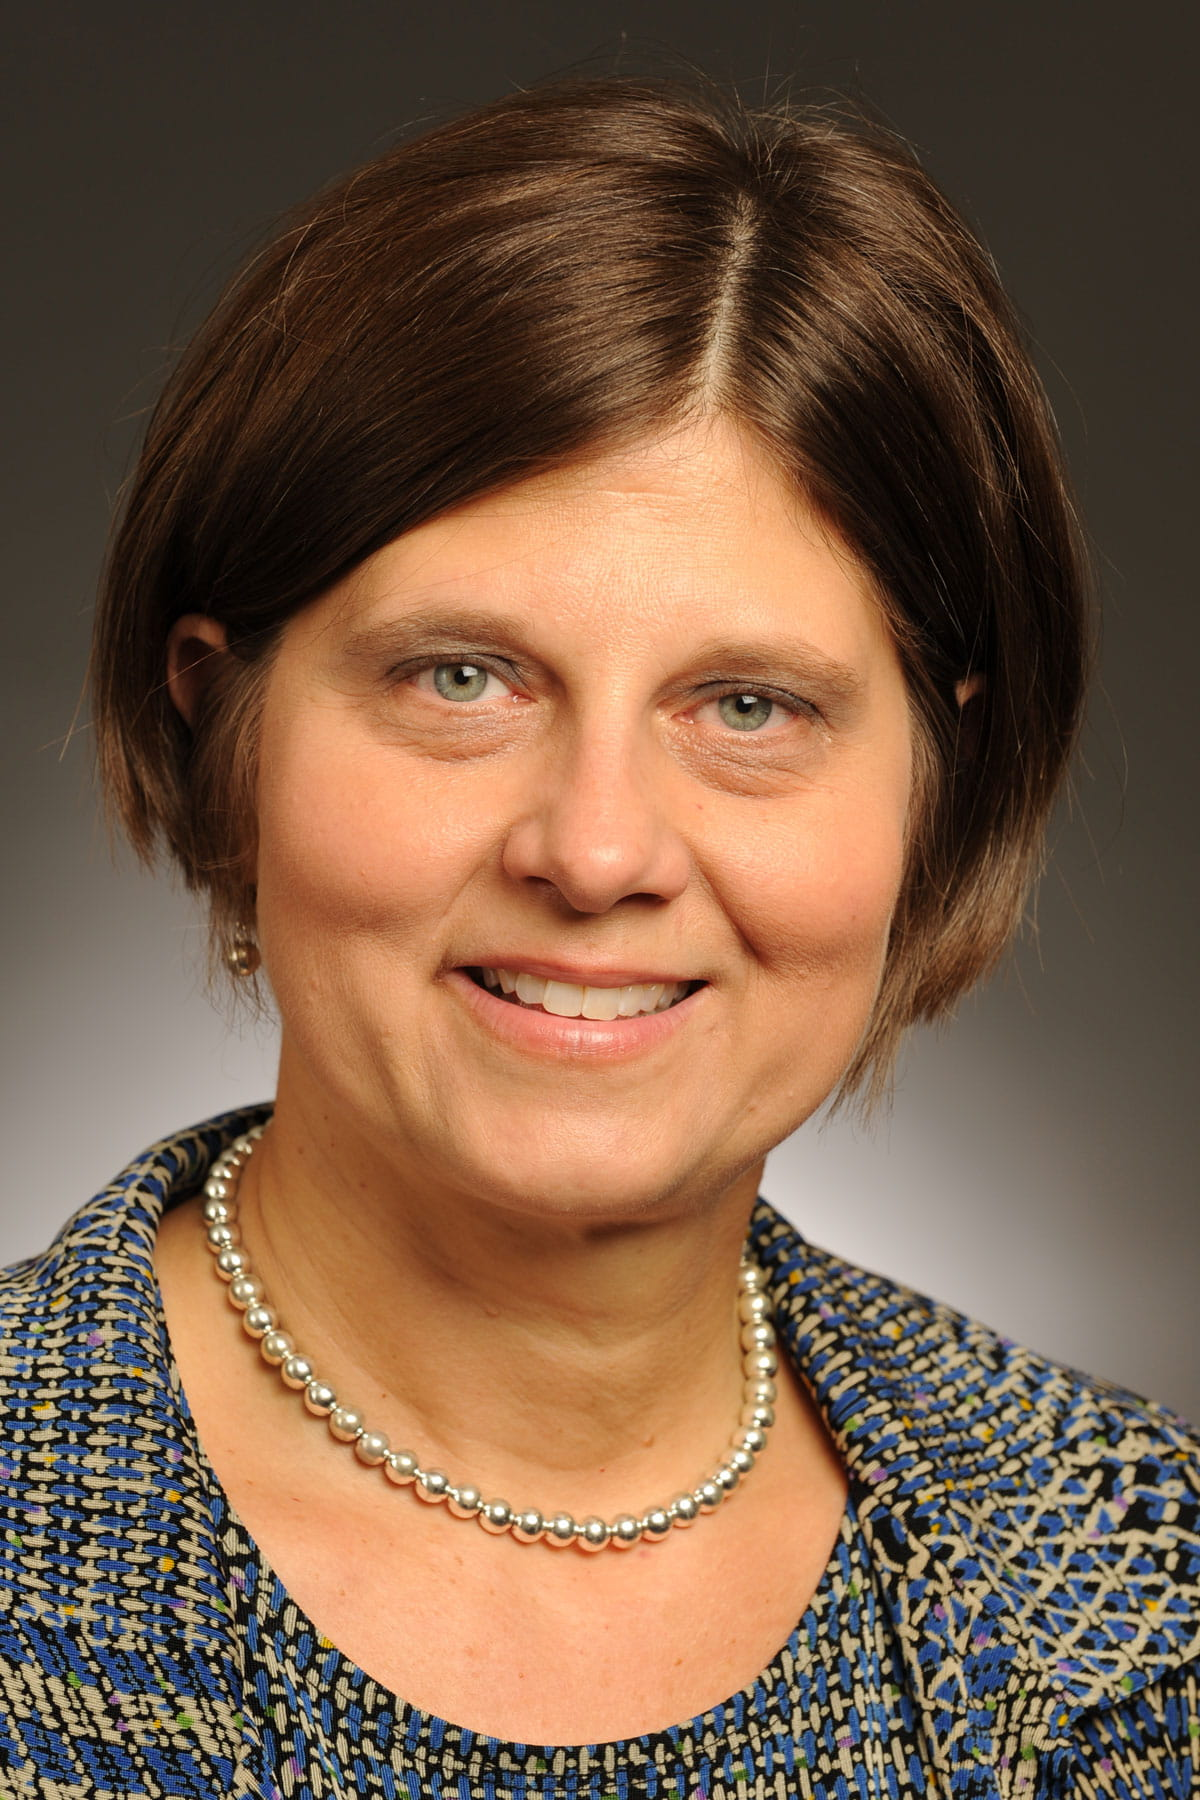 A photo of Michelle L. French.